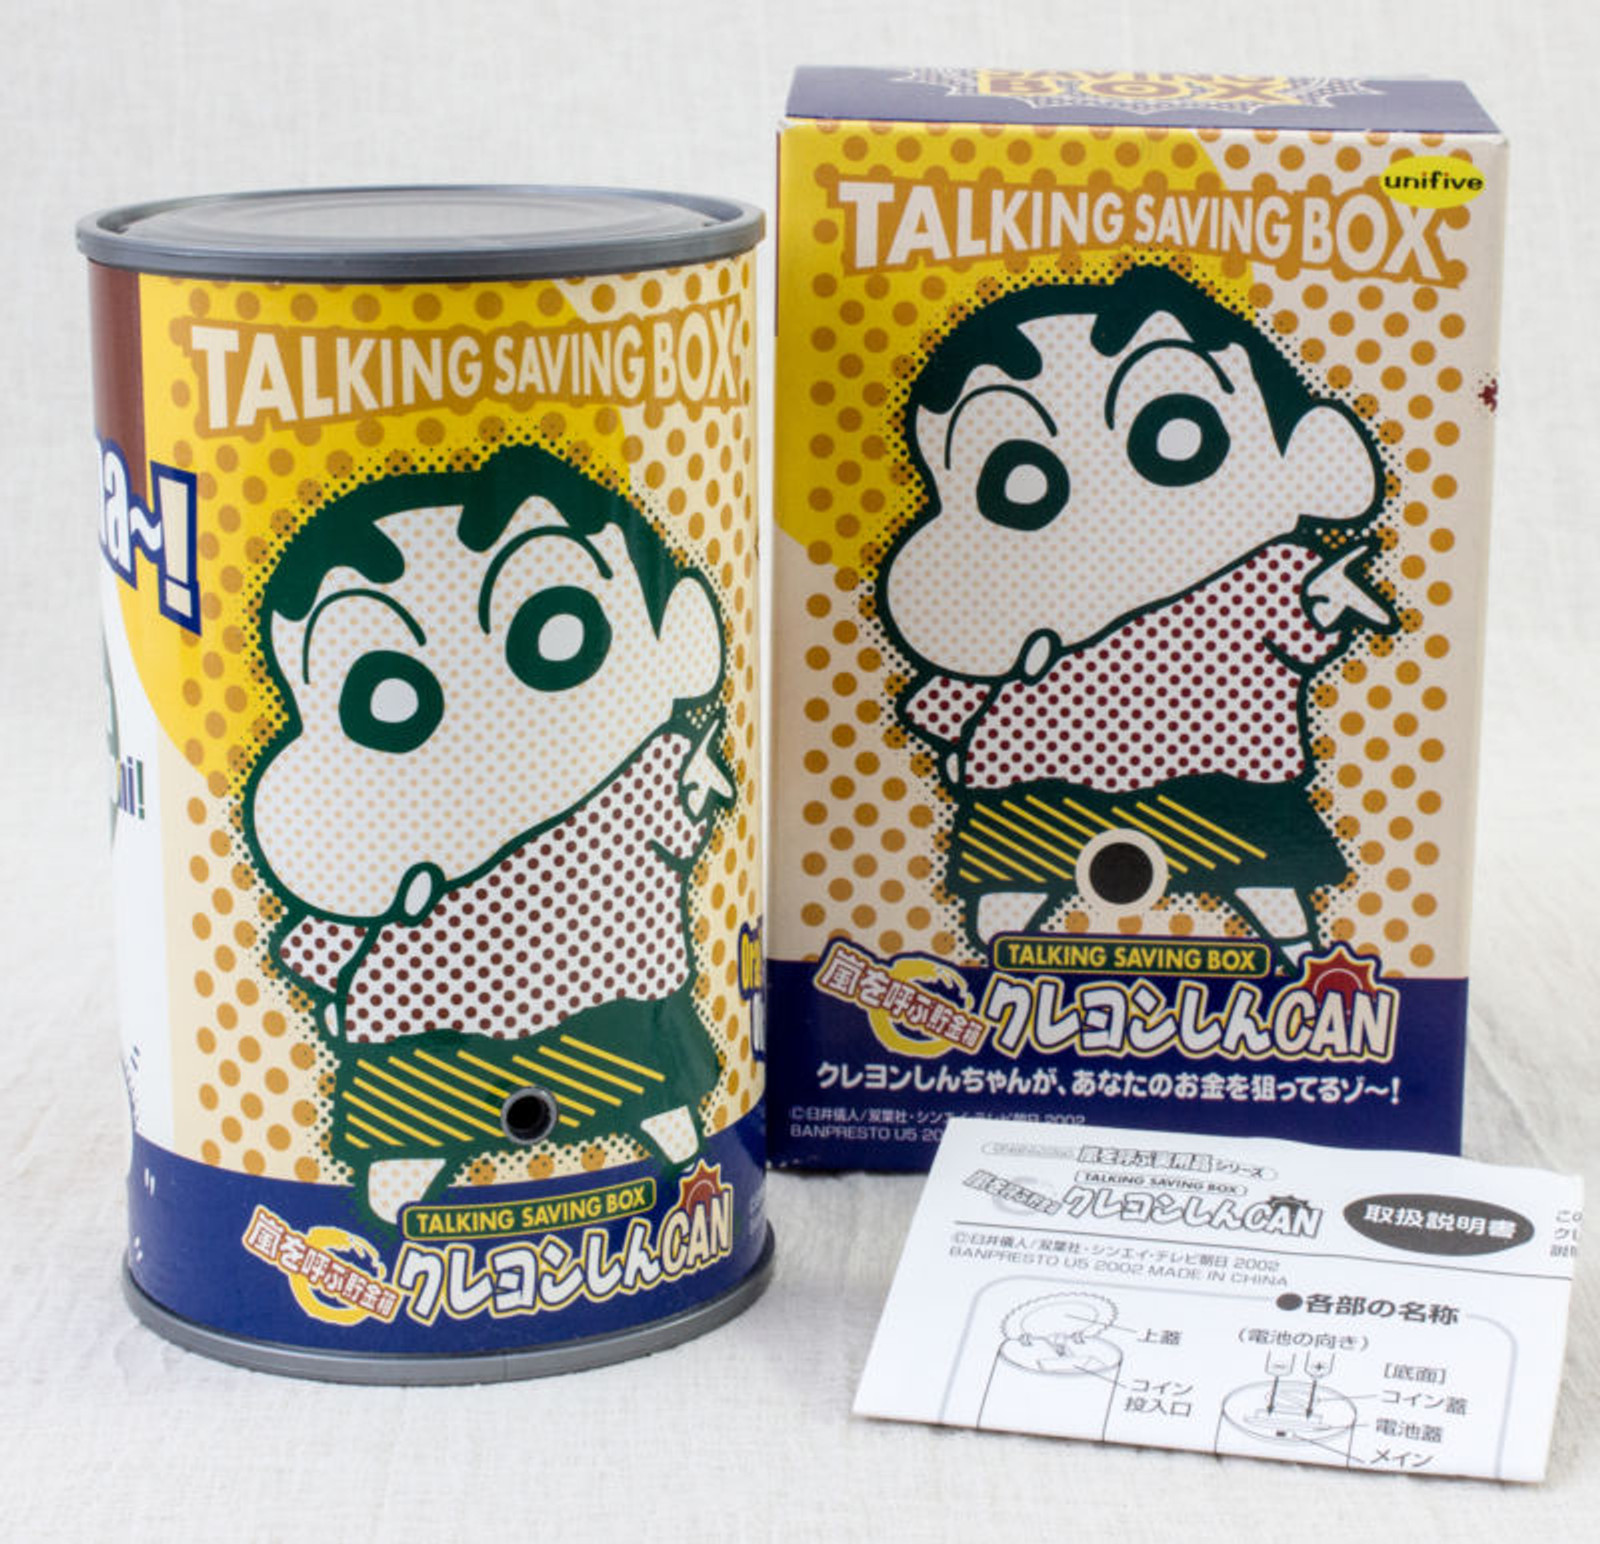 RARE! Crayon Shin-chan Talkig Saving Box Sensor Sound Coin Bank Can JAPAN ANIME